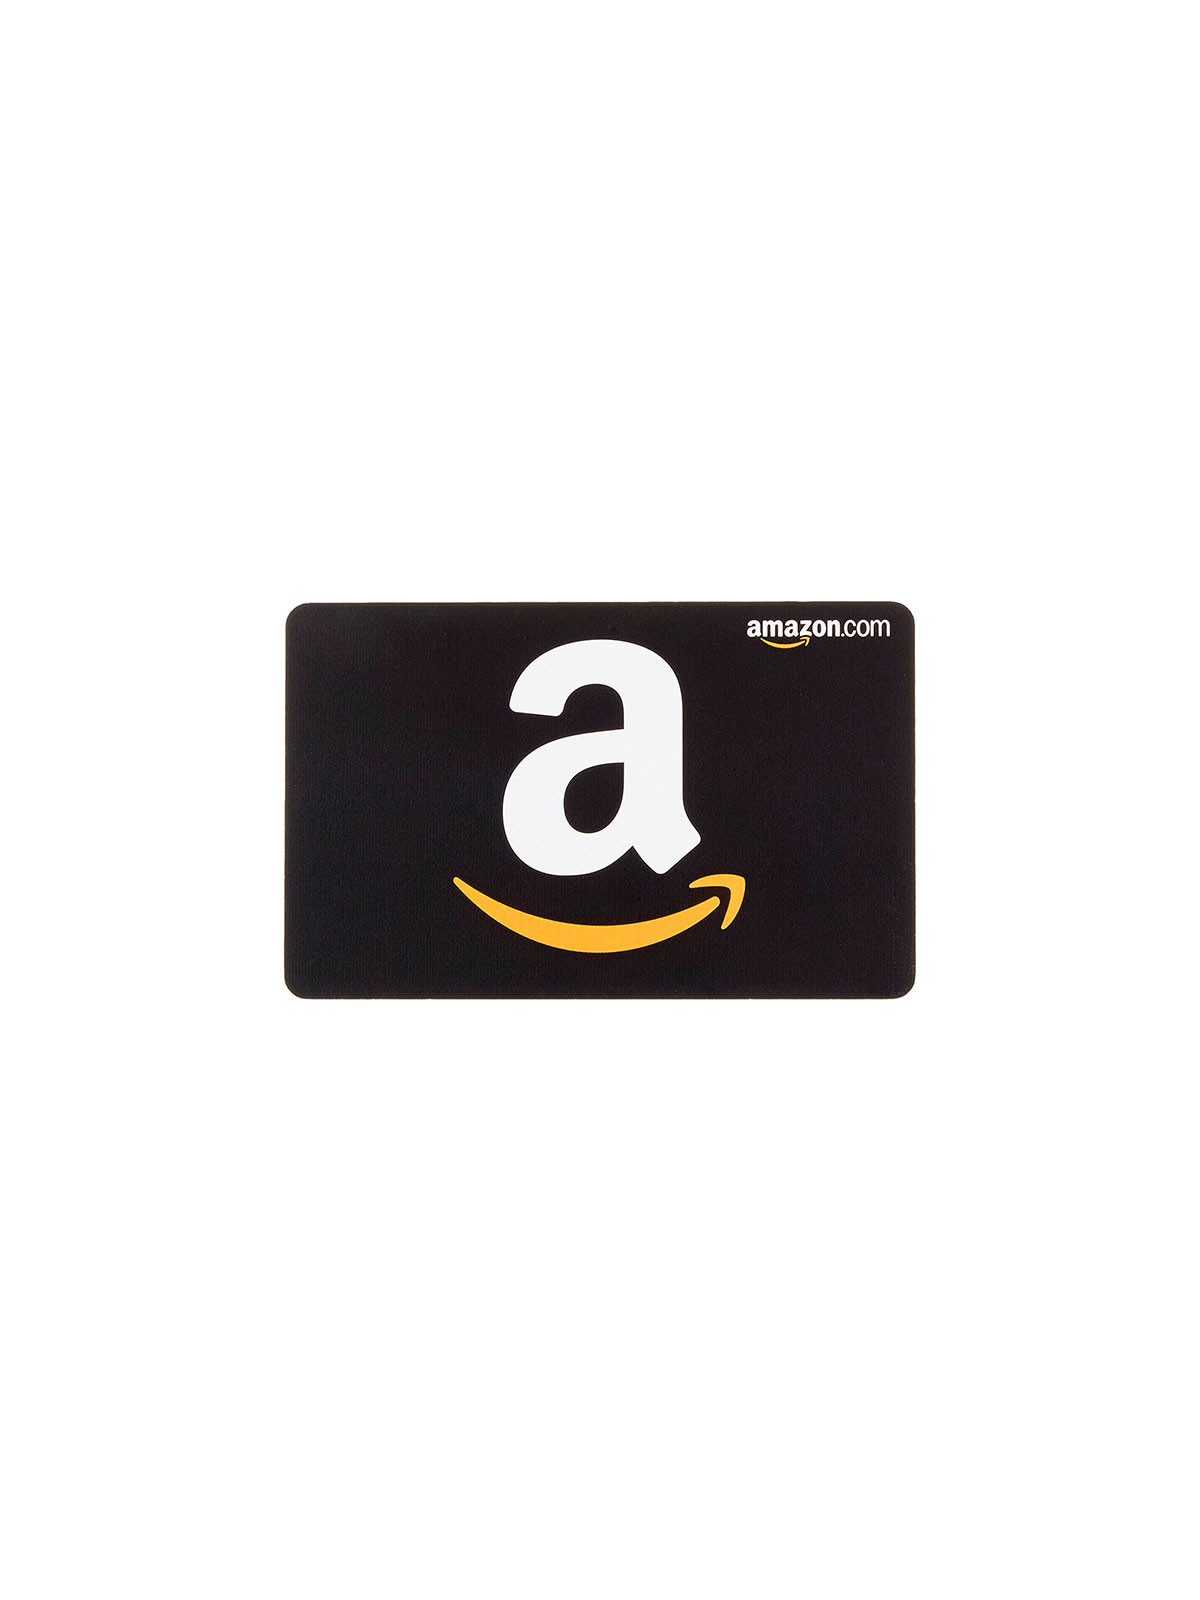 14 Unexpected Gift Card Ideas